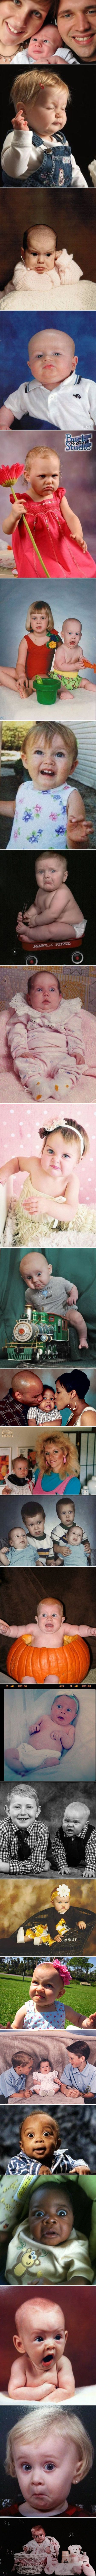 Funny kids and baby photographs taken at the perfectly wrong time. I can't stop laughing! | Follow @gwylio0148 or visit http://gwyl.io/ for more diy/kids/pets videos